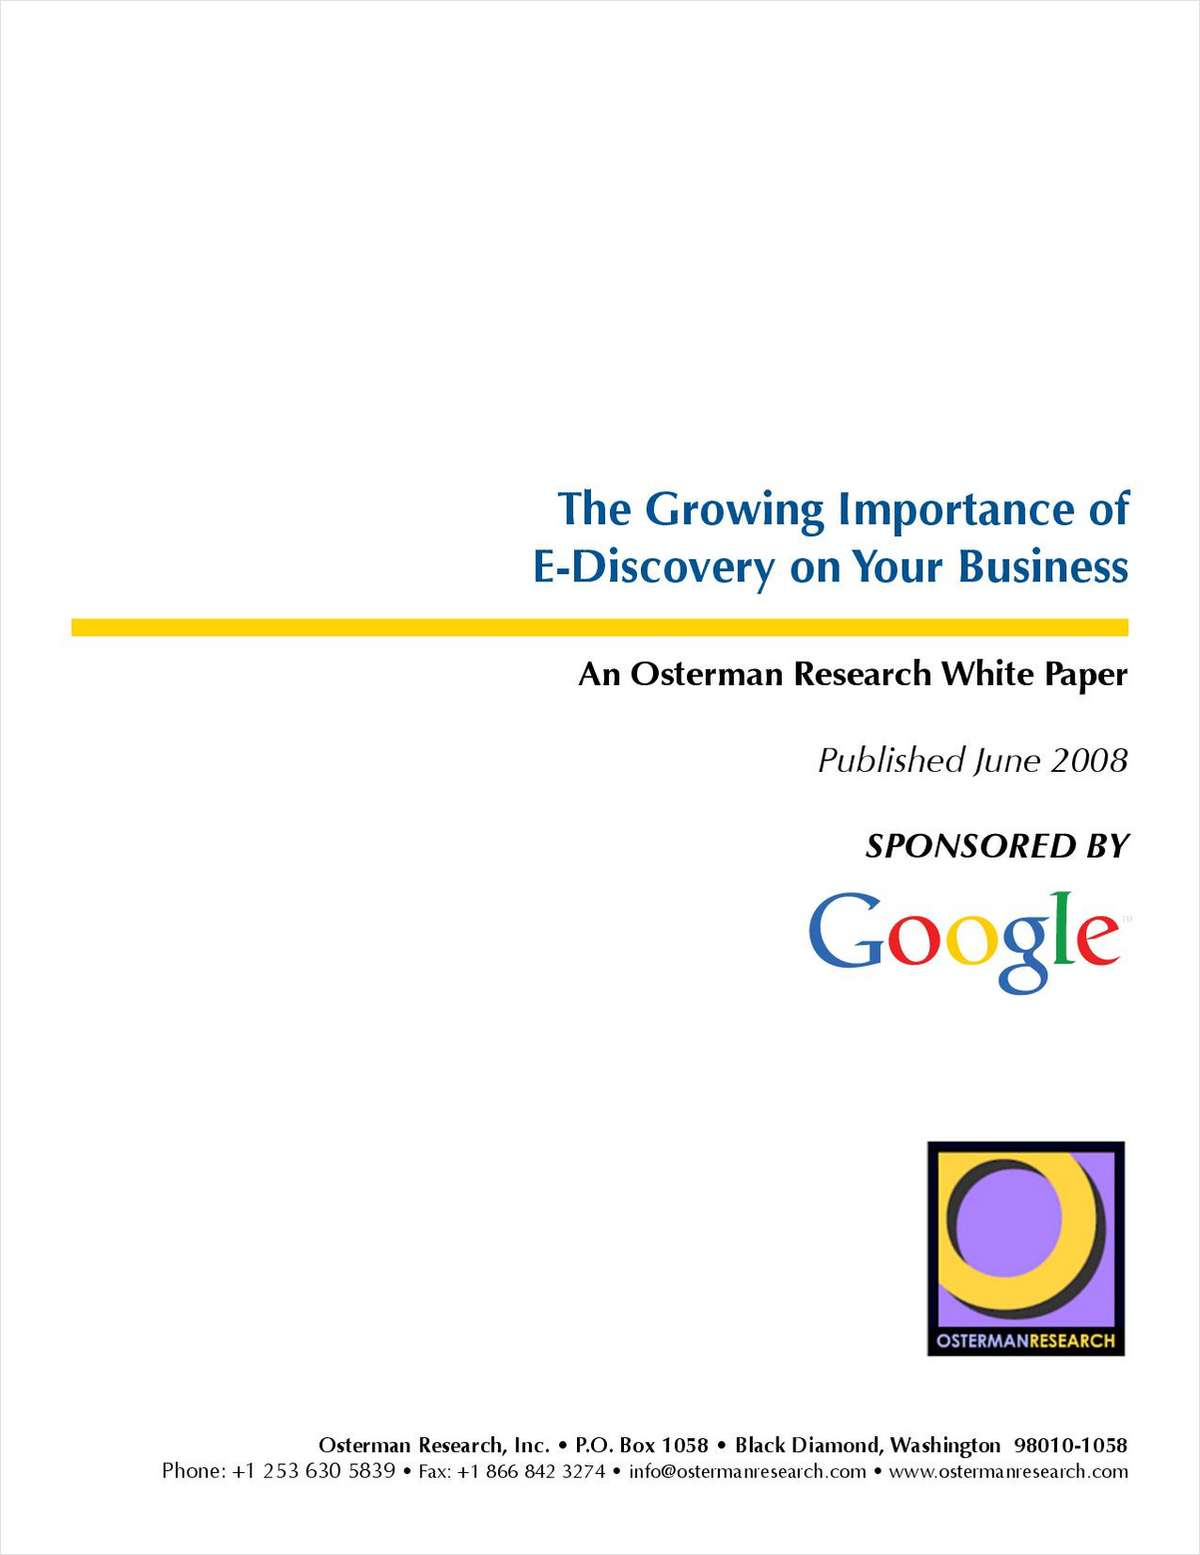 The Growing Importance of E-Discovery on Your Business